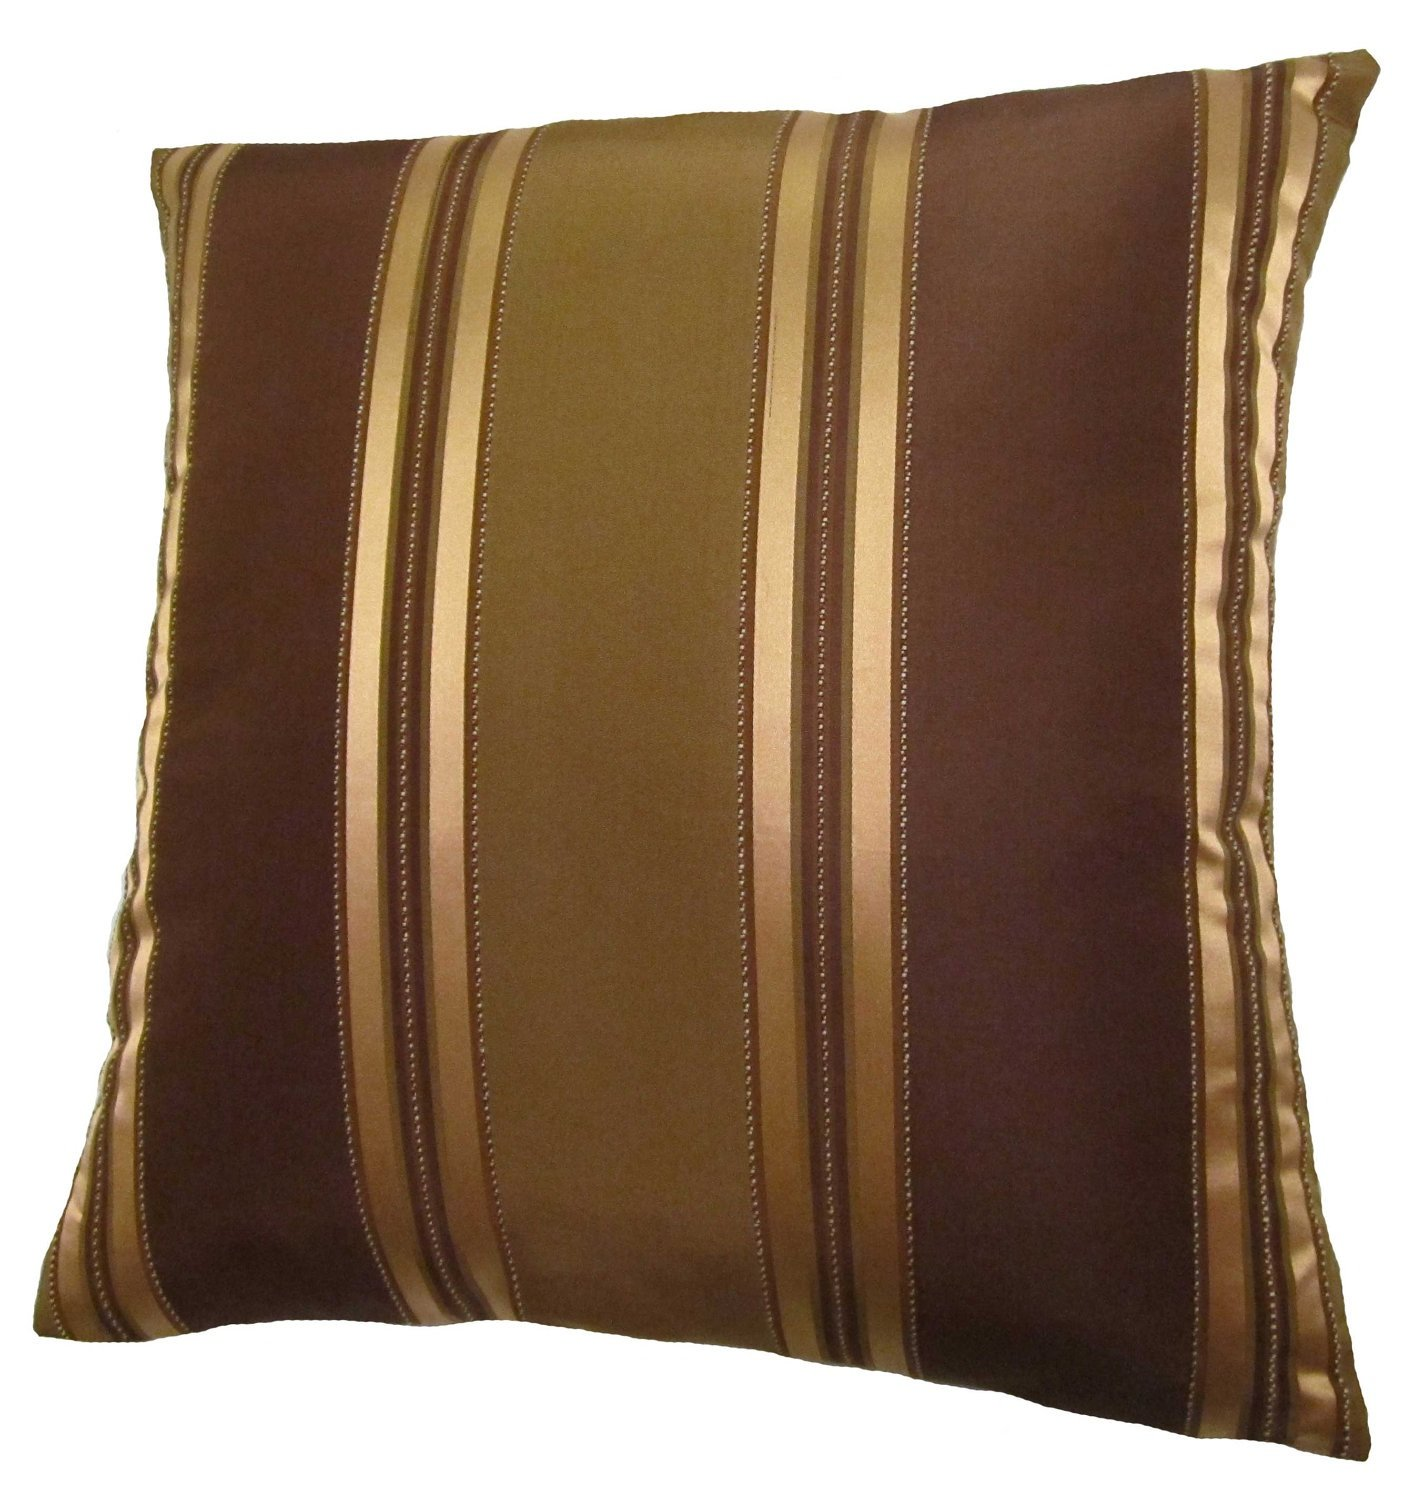 amazoncom x bronze gold and brown stripes decorative throw  - amazoncom x bronze gold and brown stripes decorative throw pillowcover home  kitchen